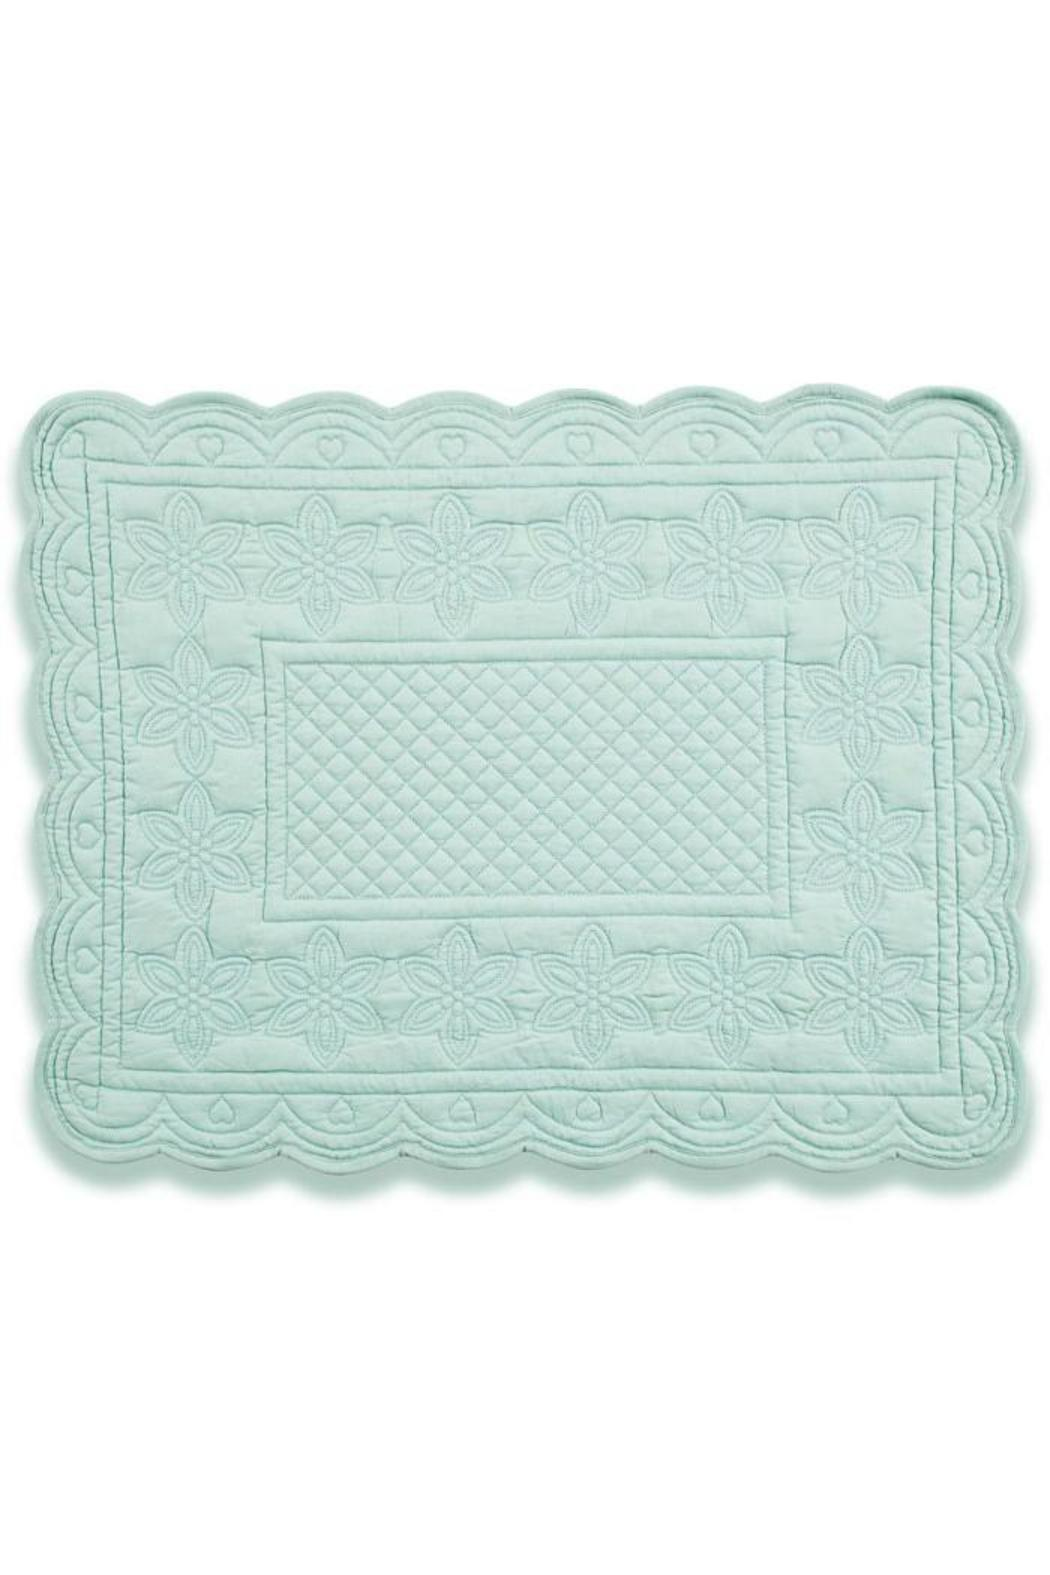 Lavender Blue Blue Quilted Placemats from Los Angeles  : lavenderblue blue quilted placemats blue 8182bd01l from www.shoptiques.com size 1050 x 1575 jpeg 97kB